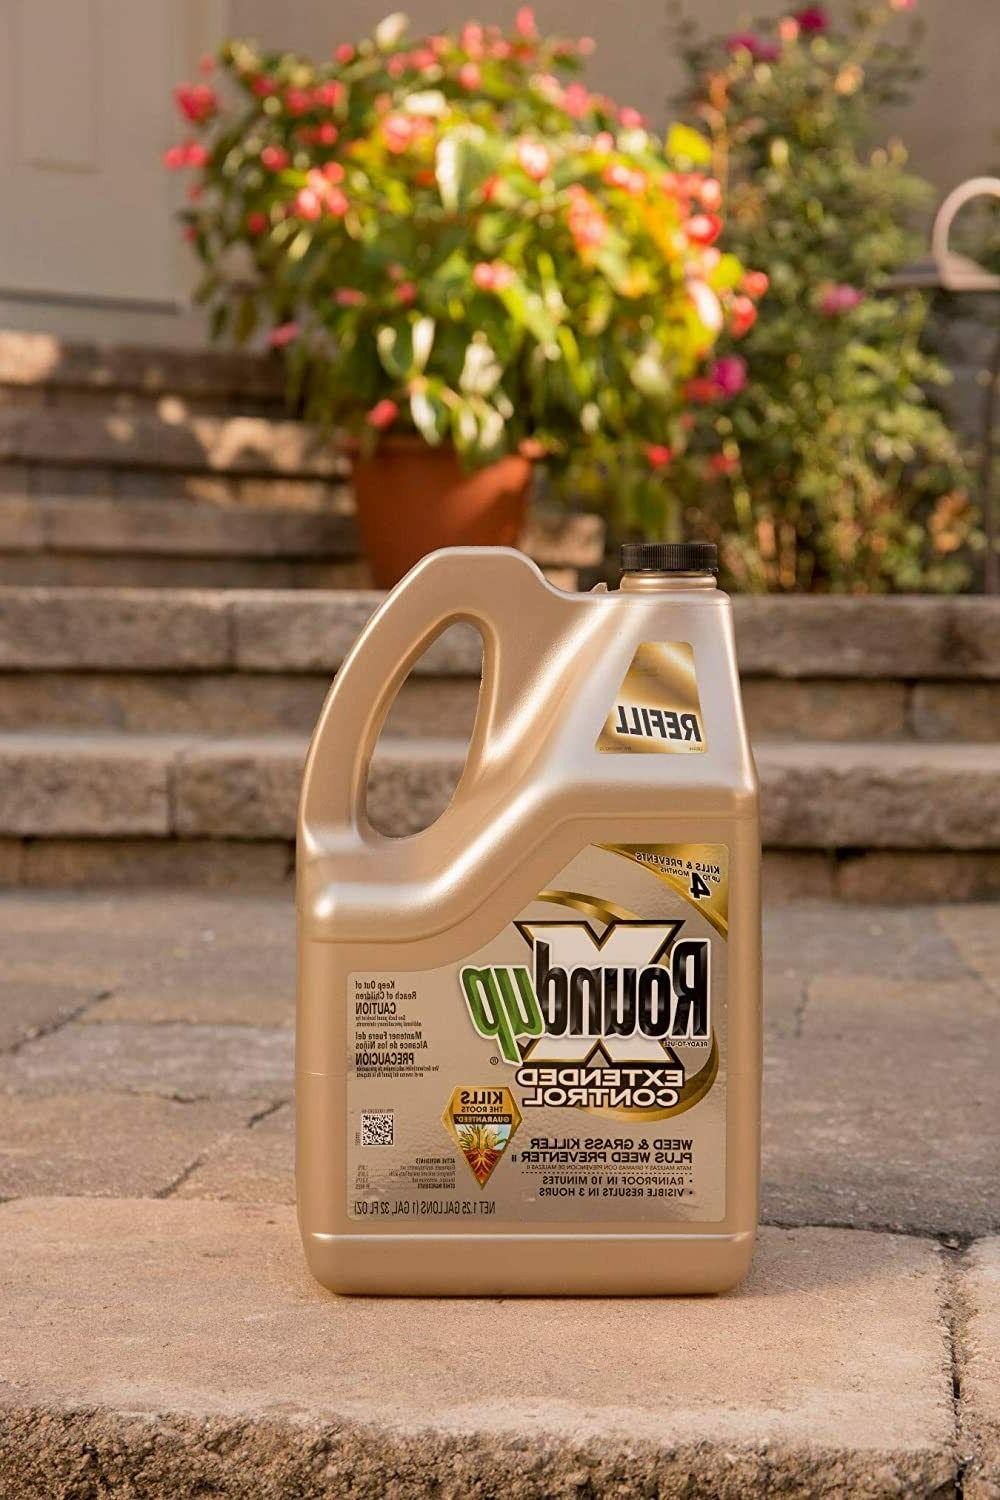 Roundup 5708010 Weed and Grass Killer Plus, 1.25-Gallon